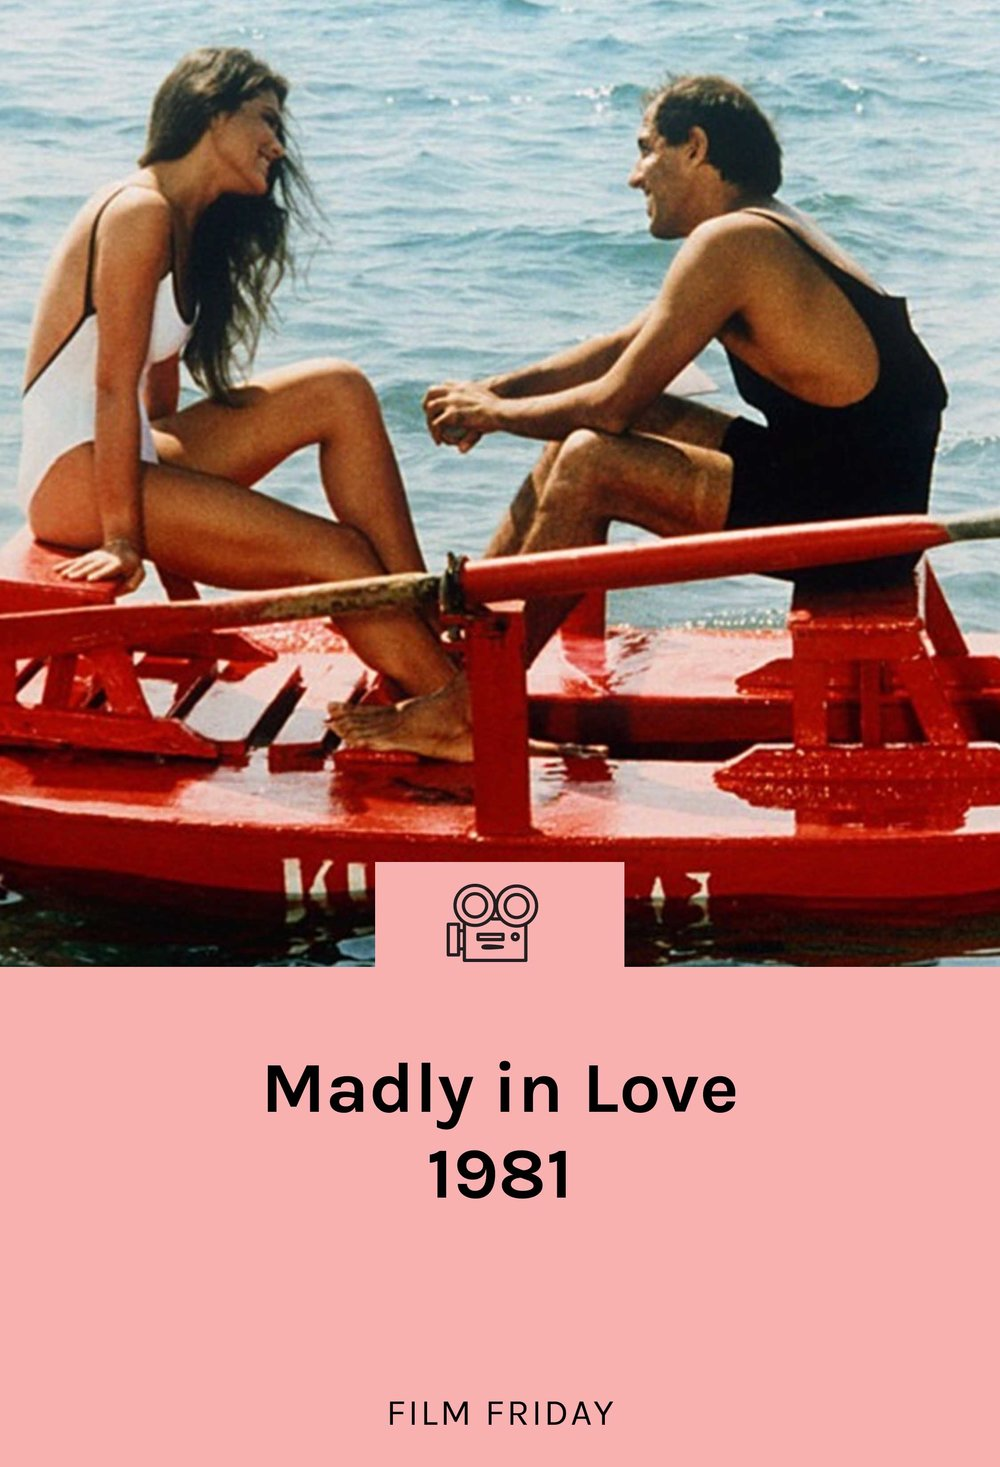 Madly-in-Love-1981-Thumbnail-.jpeg